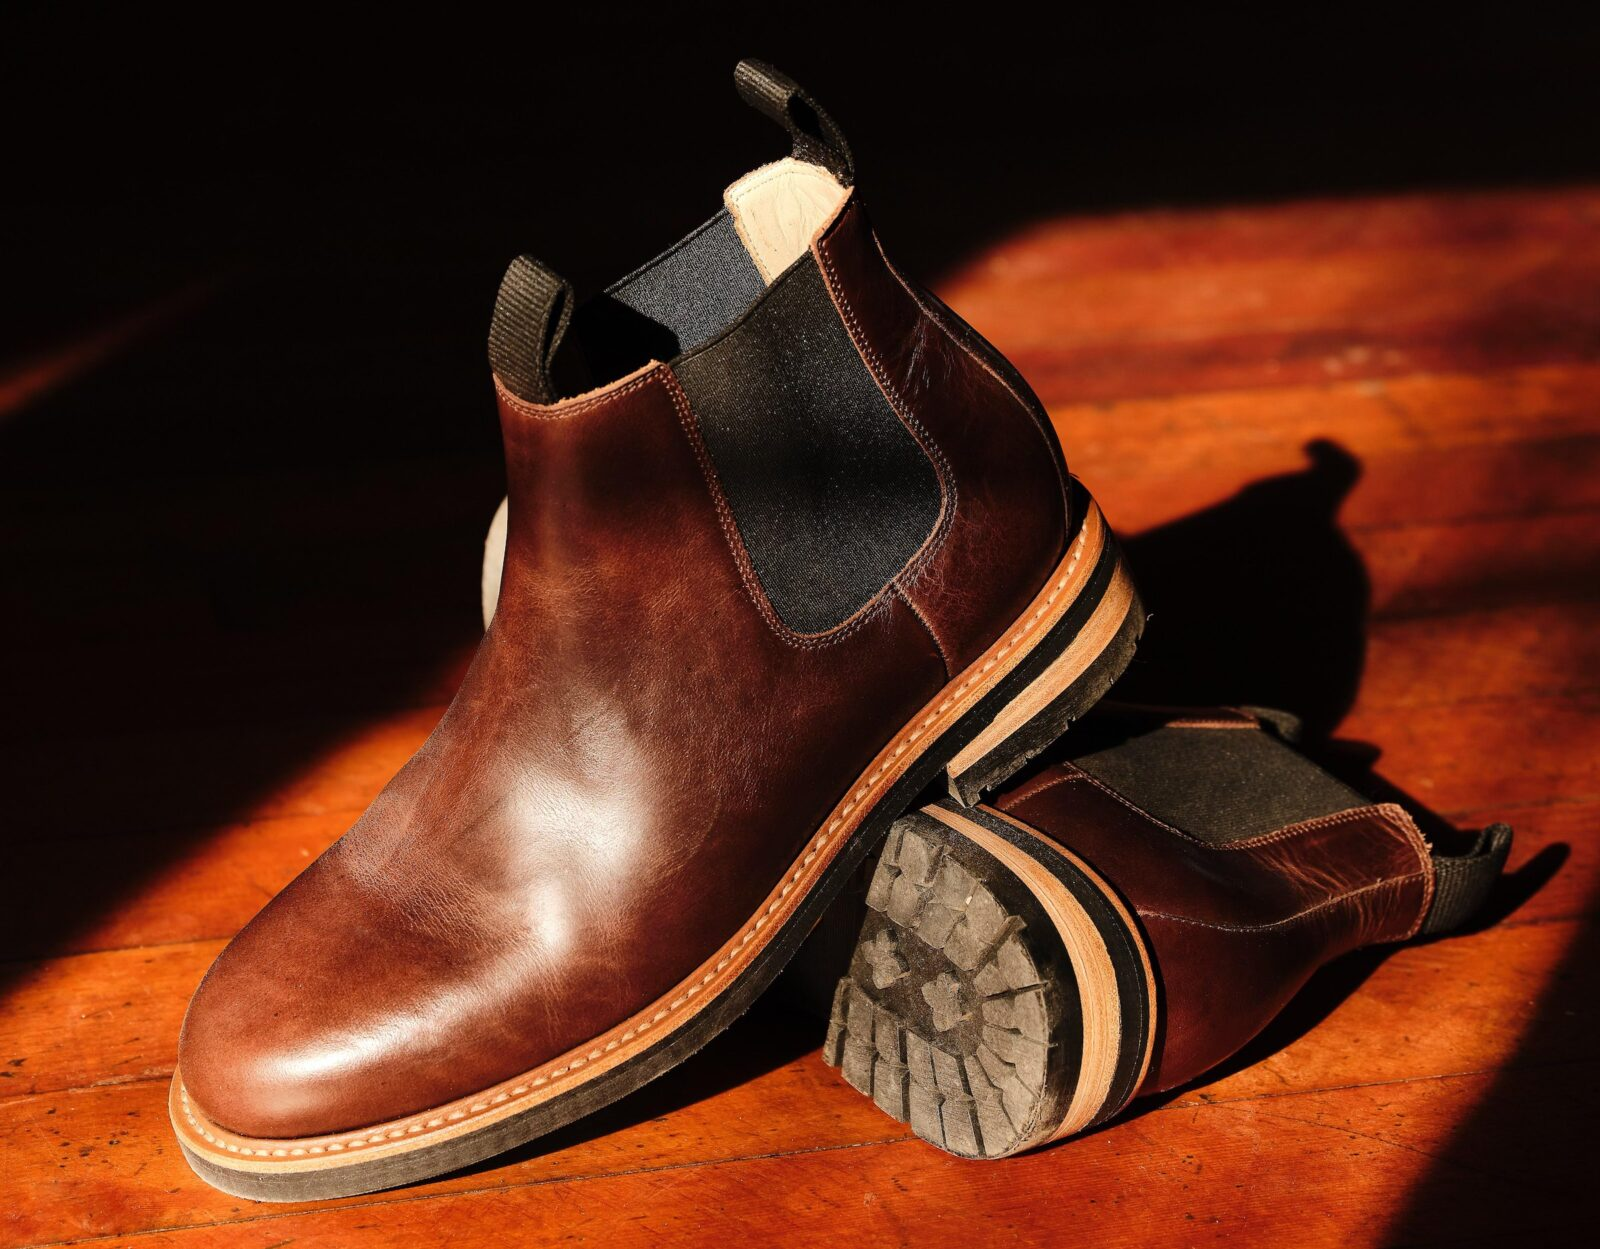 The Rhodes Cooper Boot